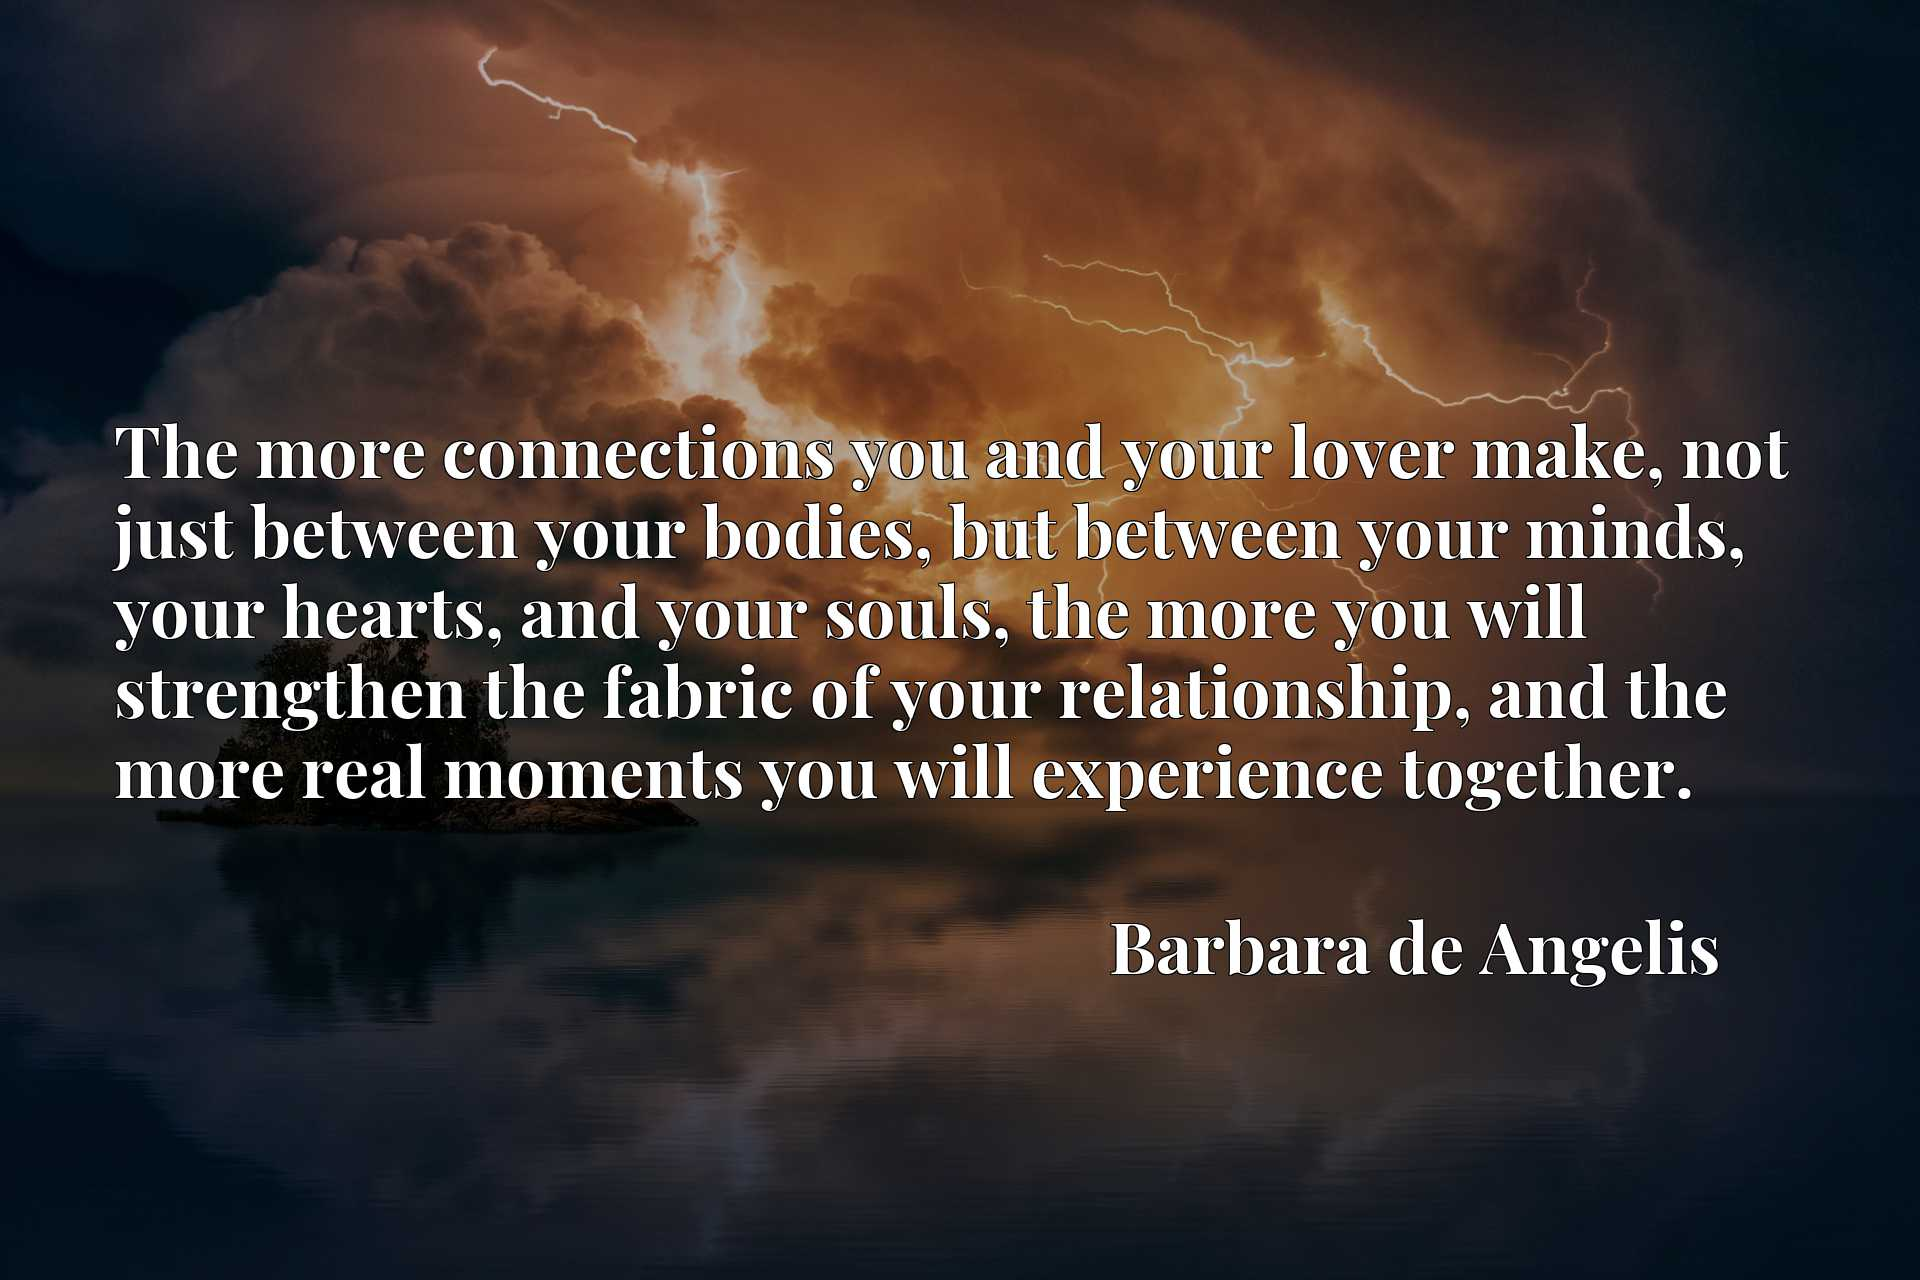 The more connections you and your lover make, not just between your bodies, but between your minds, your hearts, and your souls, the more you will strengthen the fabric of your relationship, and the more real moments you will experience together.